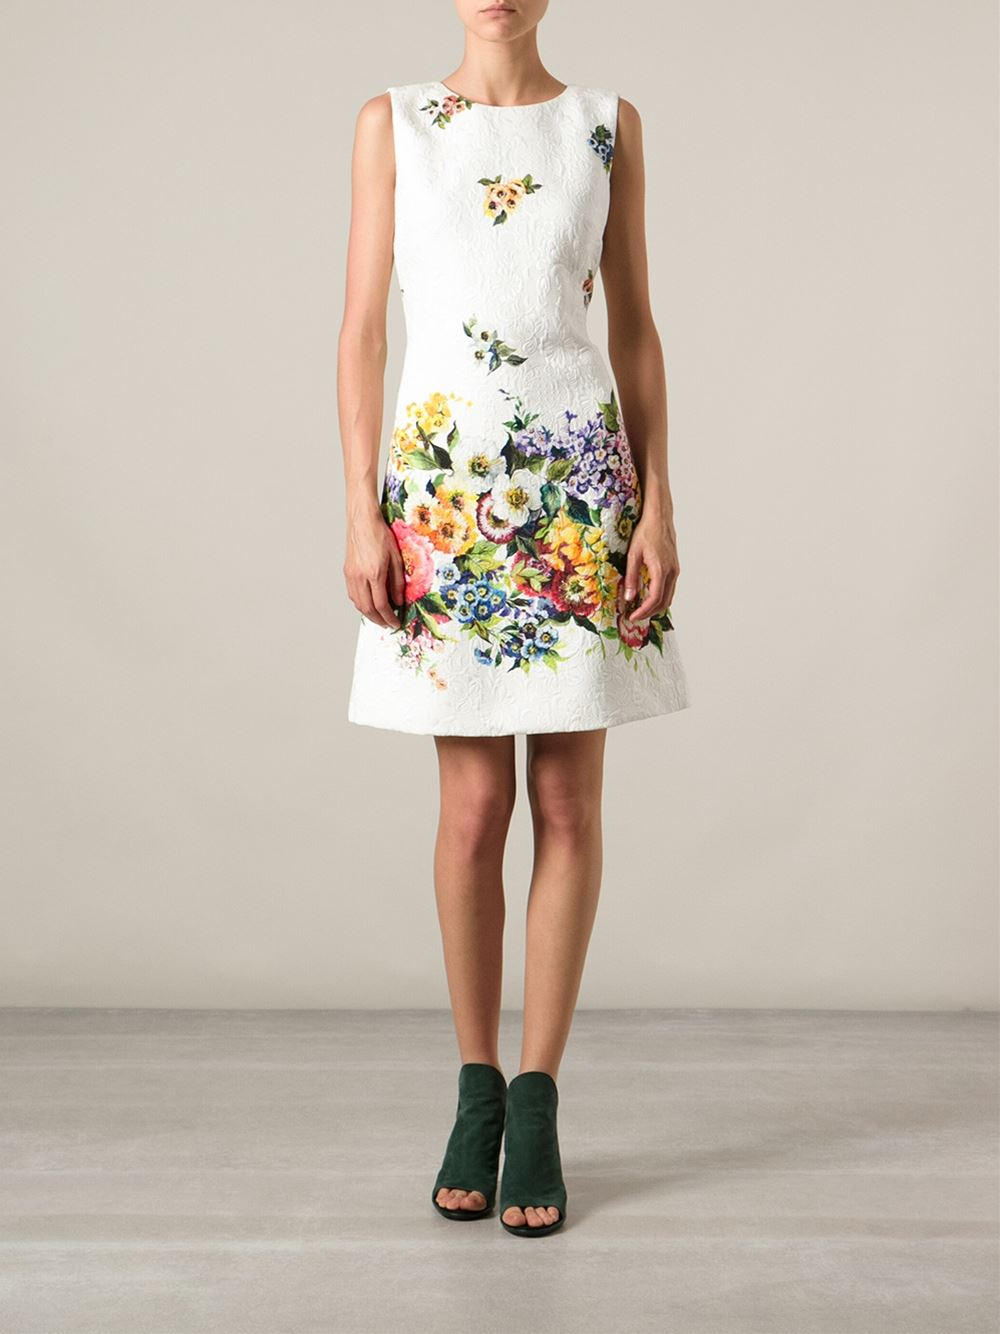 Lyst - Dolce   Gabbana Floral Print Dress in White f09d0838c